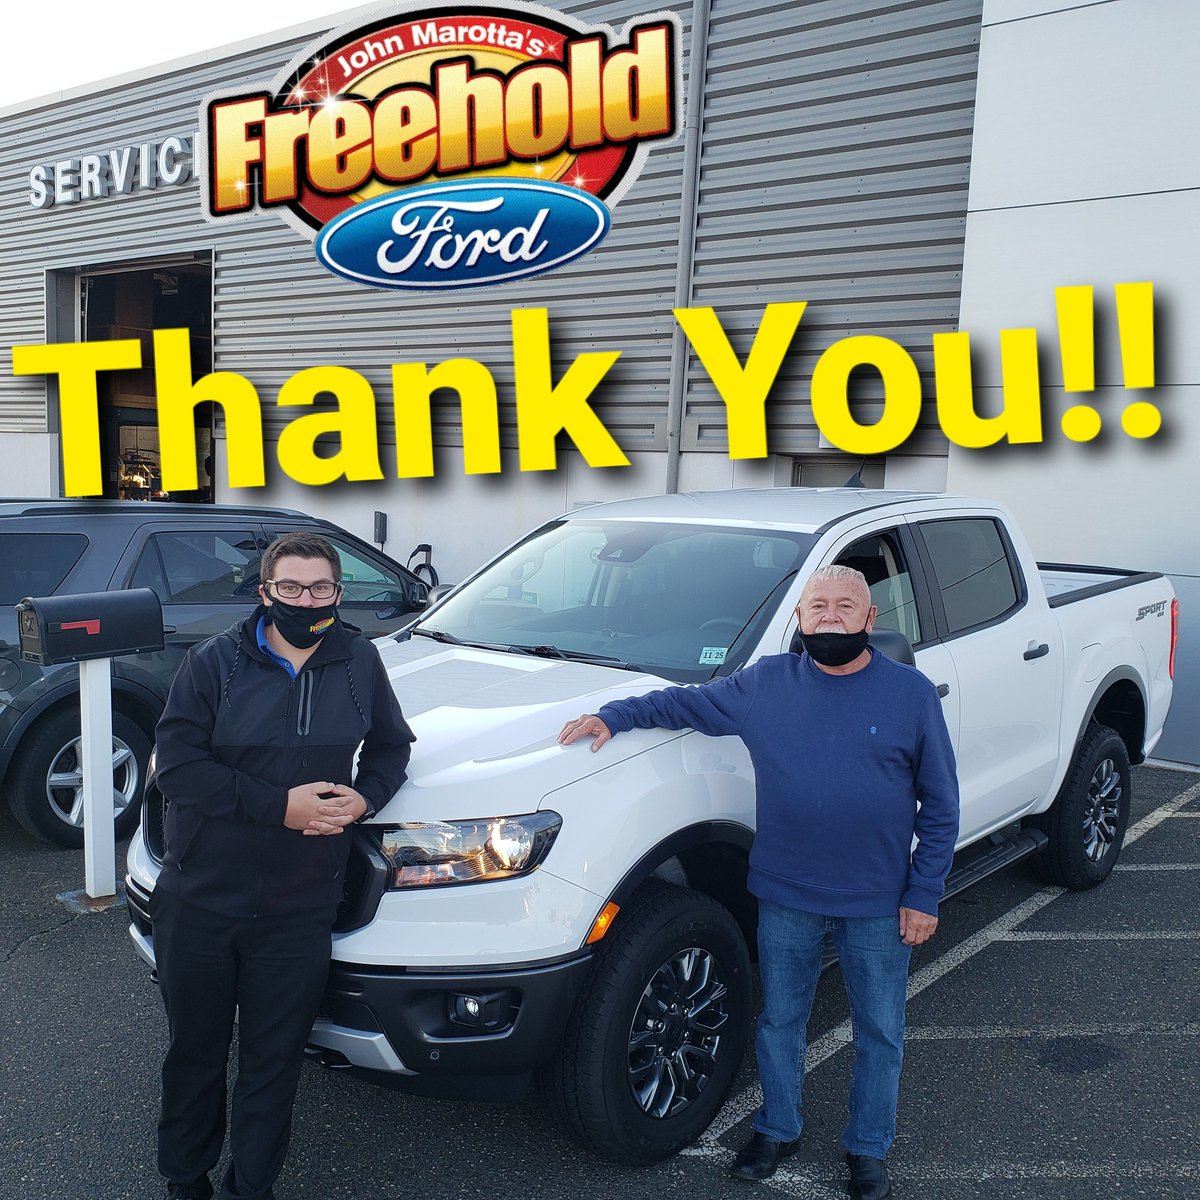 Congratulations Nickolas, on your beautiful new Ford Ranger from Freehold Ford!!  #freeholdford #fordperformance #FORDMOTORCOMPANY #ford #freeholdfordfamily #freeholdtownship #ranger #fordranger @FreeholdFord @Ford @FordPerformance https://t.co/HykH9JQfZm